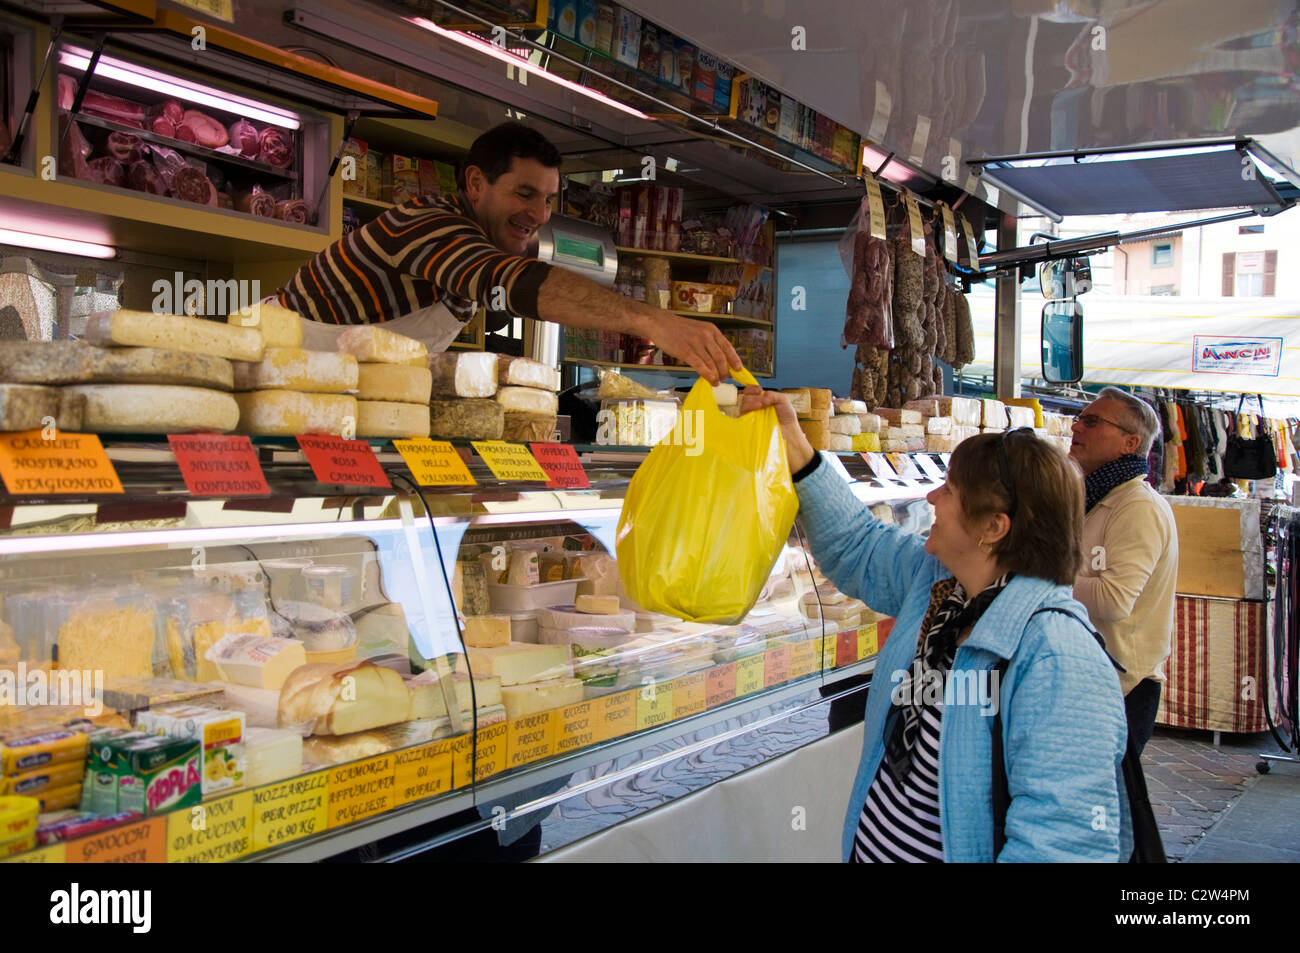 Customer at a mobile cheese and cold salami stall in marketplace in Iseo - Stock Image